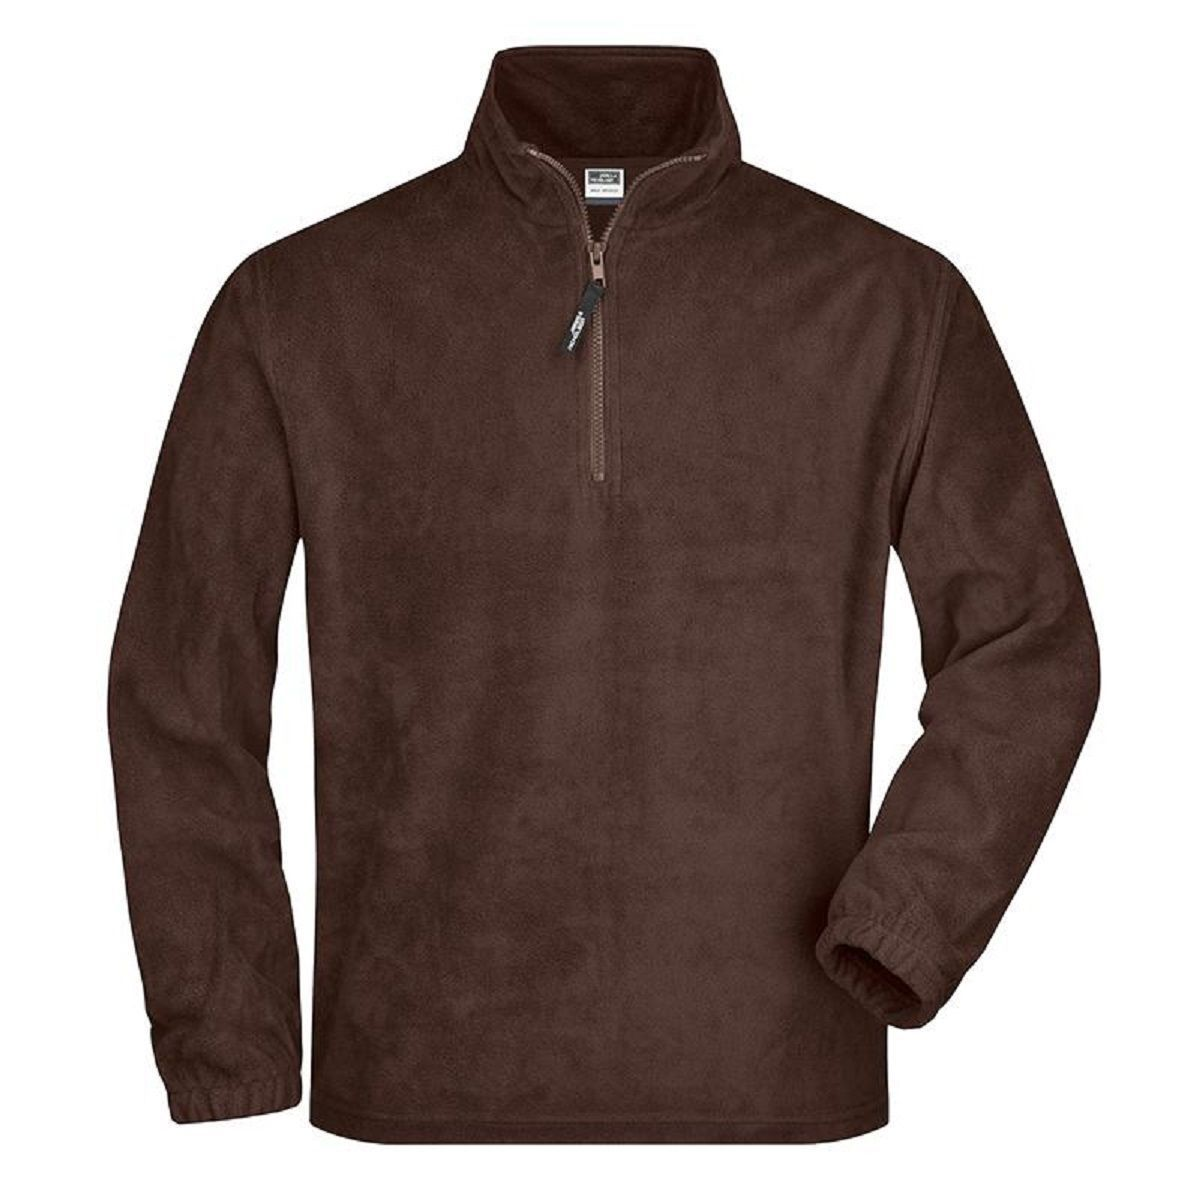 Sweat polaire col zippé homme - JN043 - marron